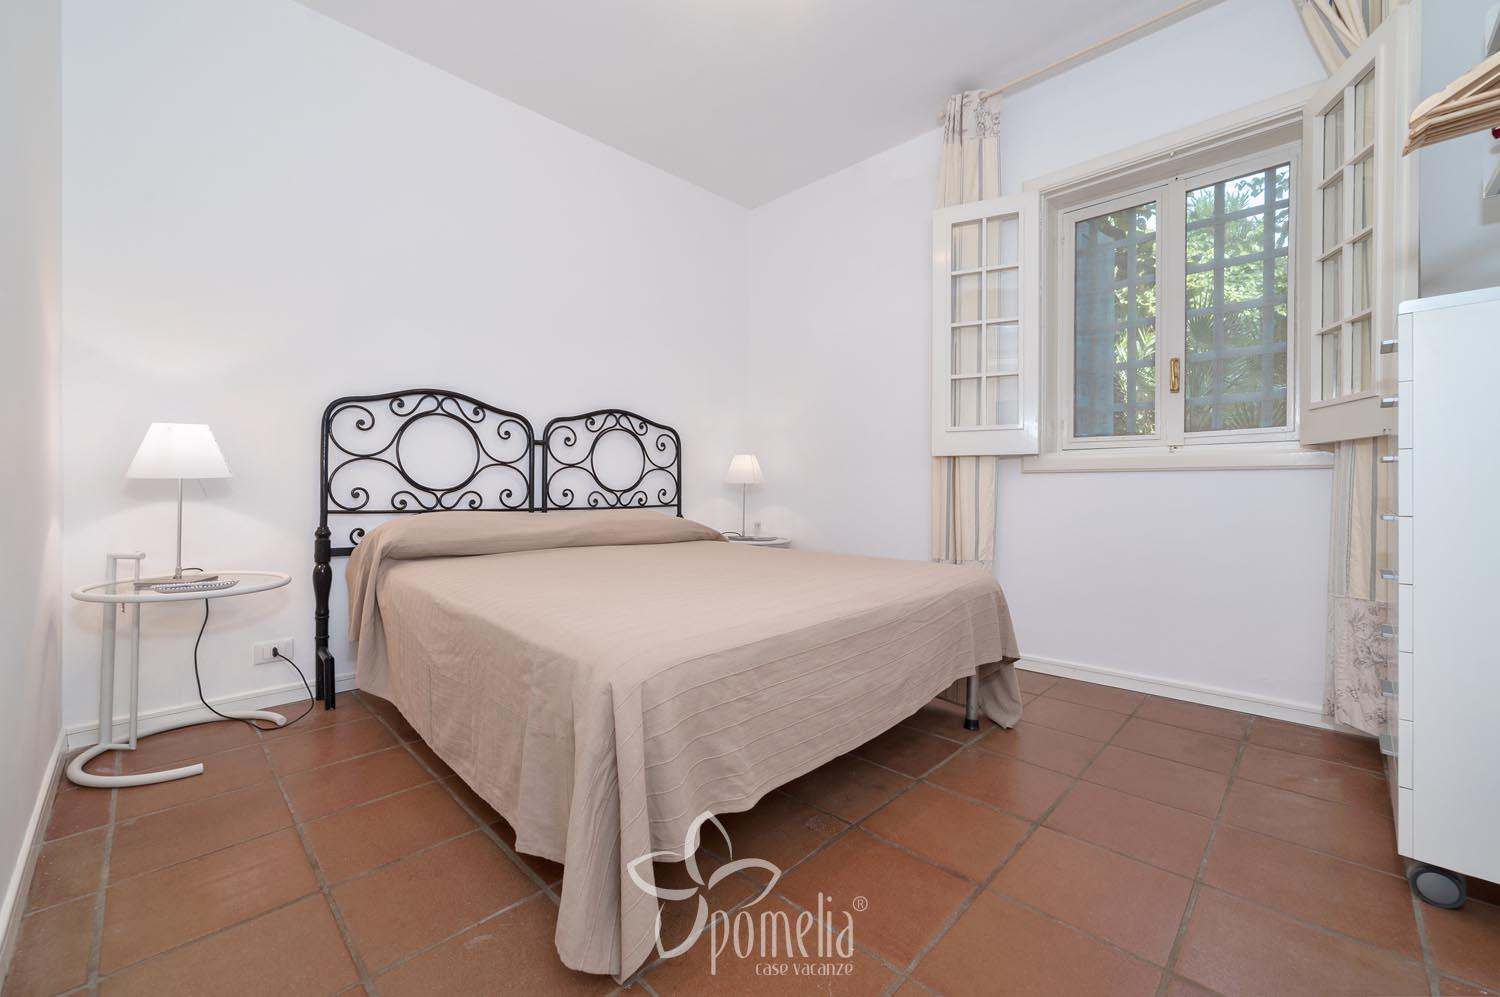 Elettra, seafront villa with beautiful view near Punta Secca - Double room